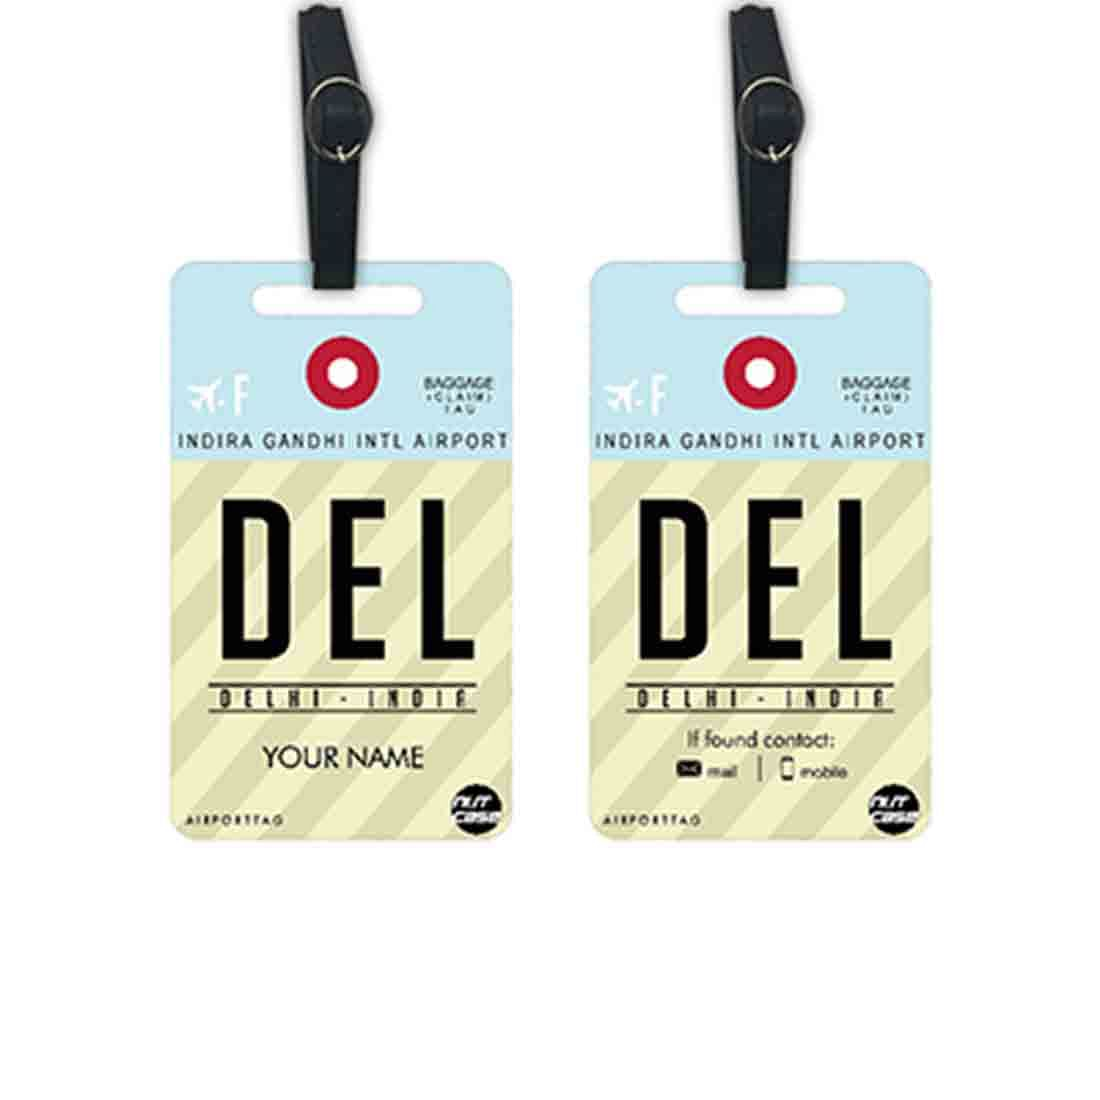 Classy Personalized Luggage Tag - Add your Name - Set of 2